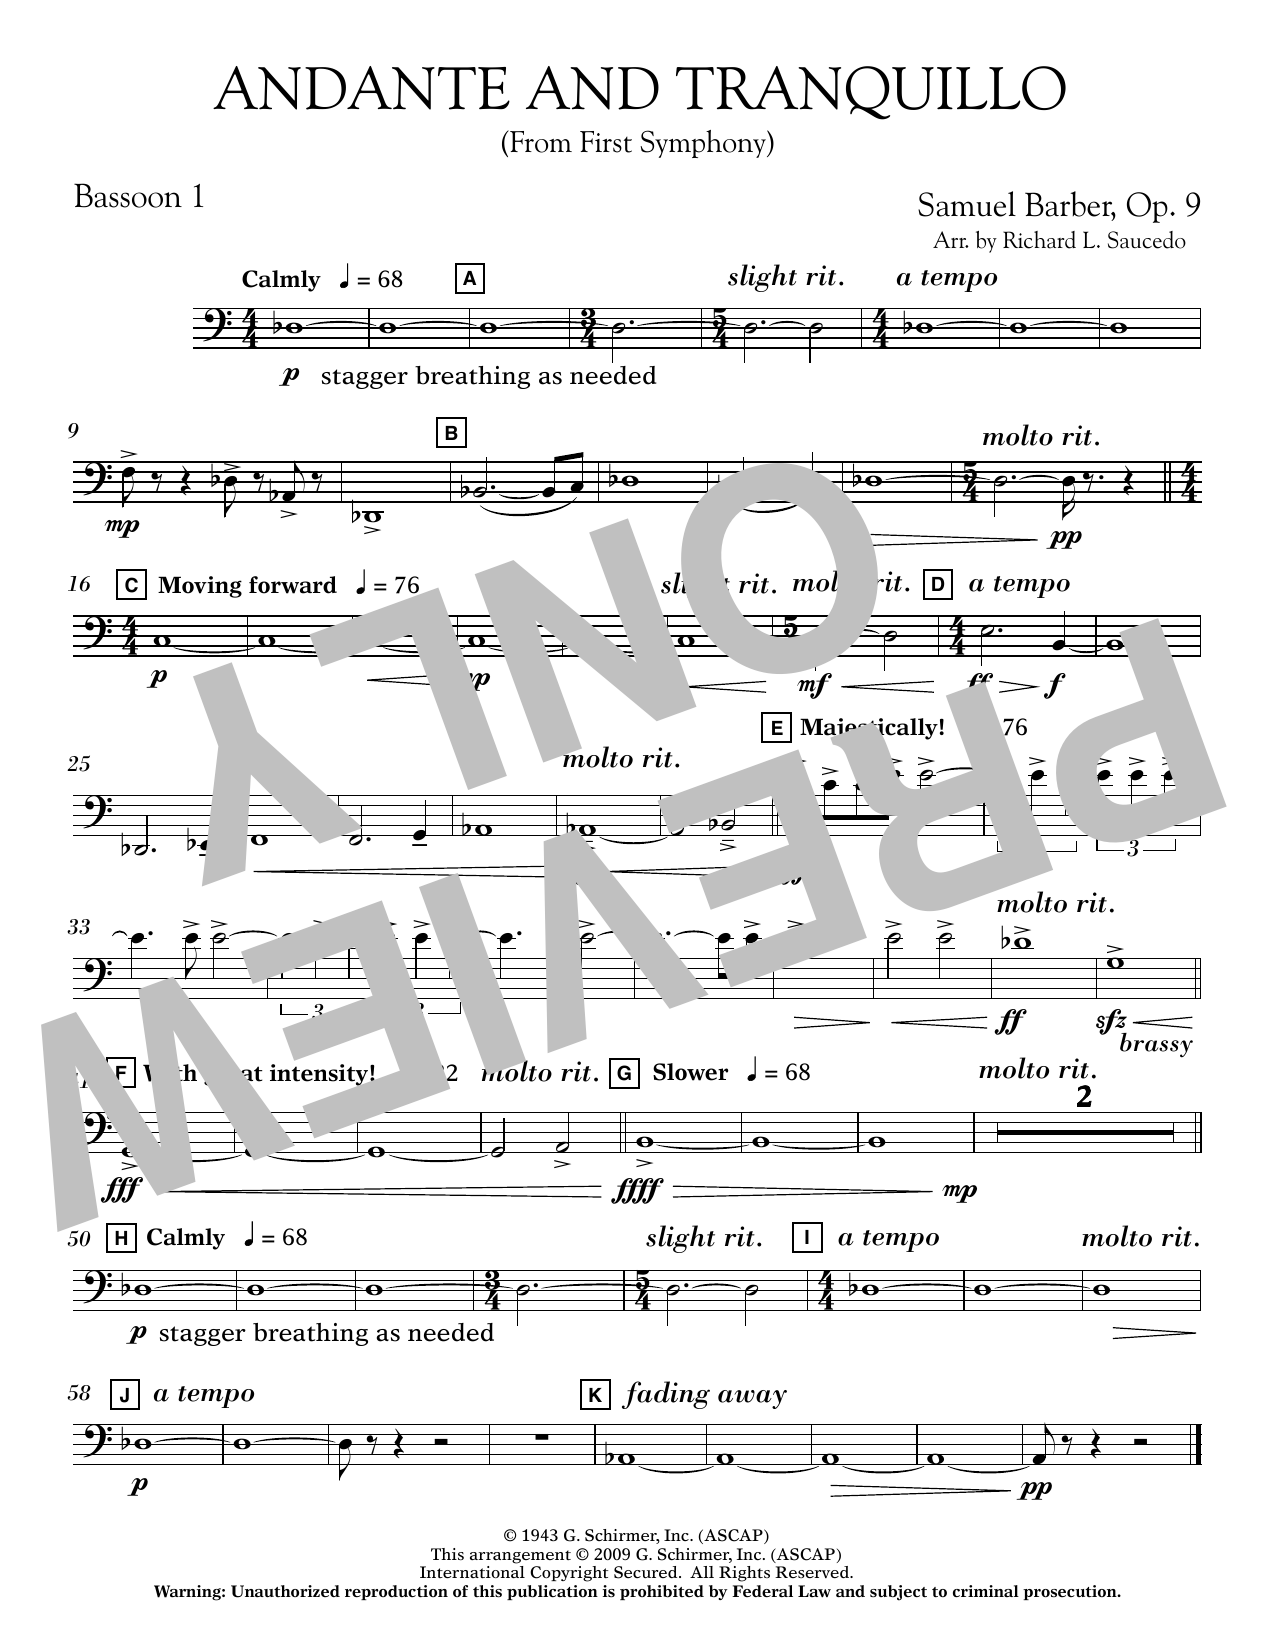 Andante and Tranquillo (from First Symphony) - Bassoon 1 Sheet Music